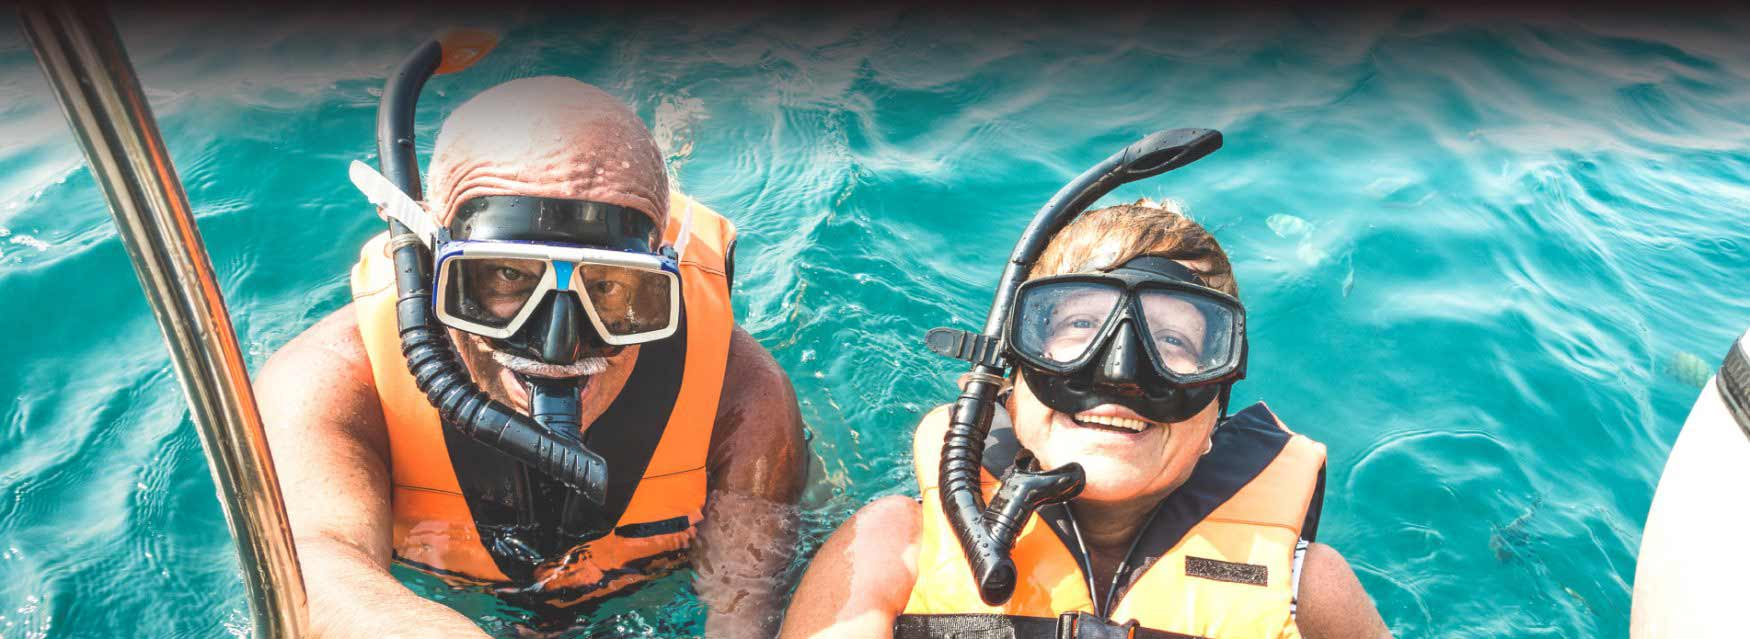 A man and a woman scuba diving